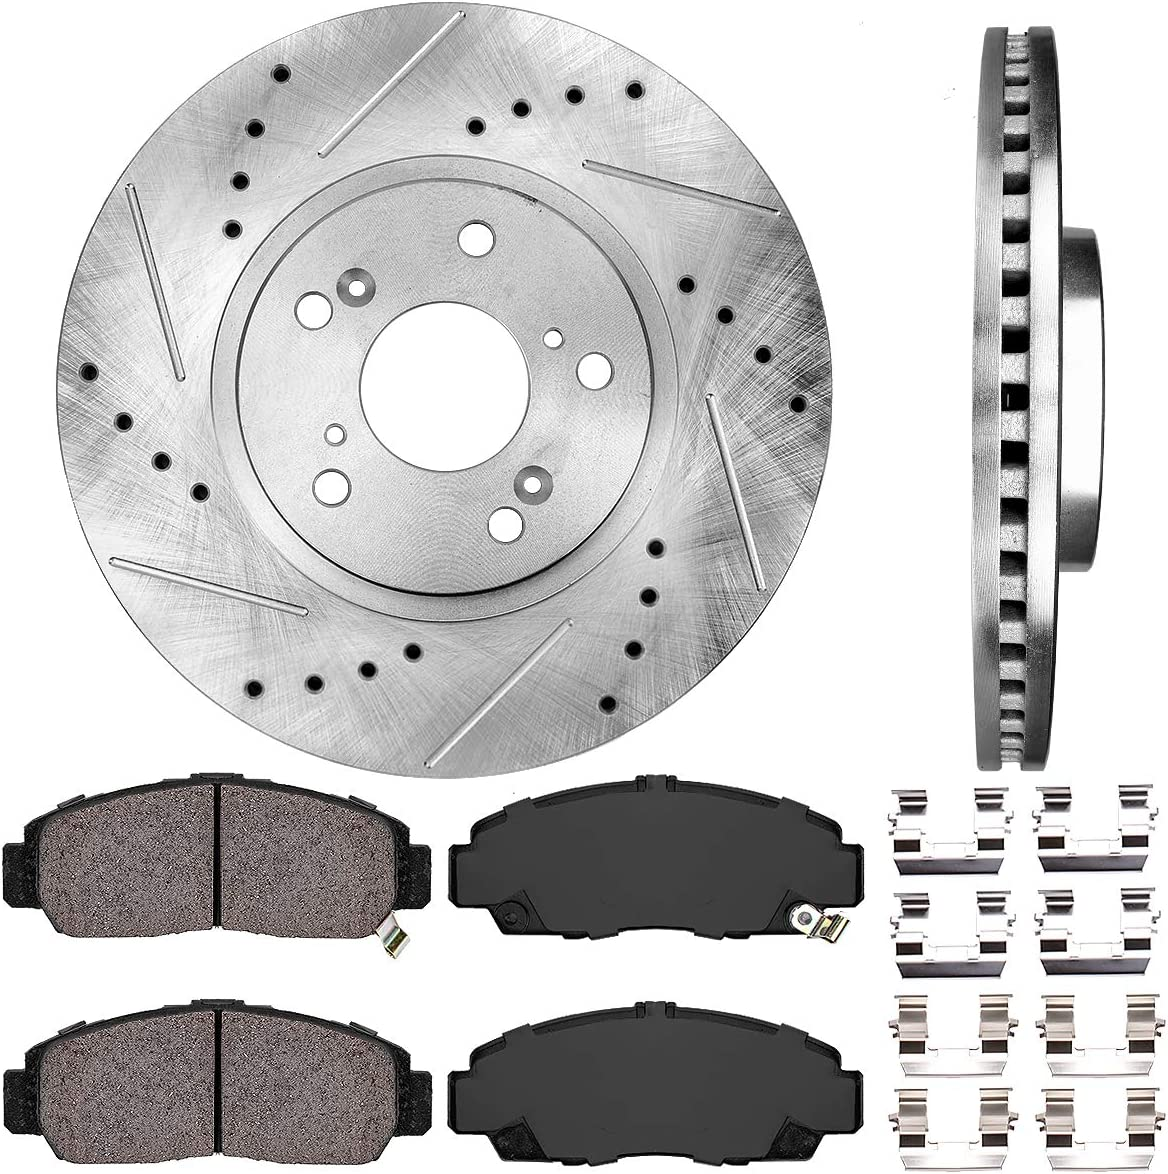 Max Brakes Front Carbon Ceramic Performance Disc Brake Pads KT005651 1999 99 2000 00 2001 01 2002 02 2003 03 Acura TL; Incl Fits Type S Models